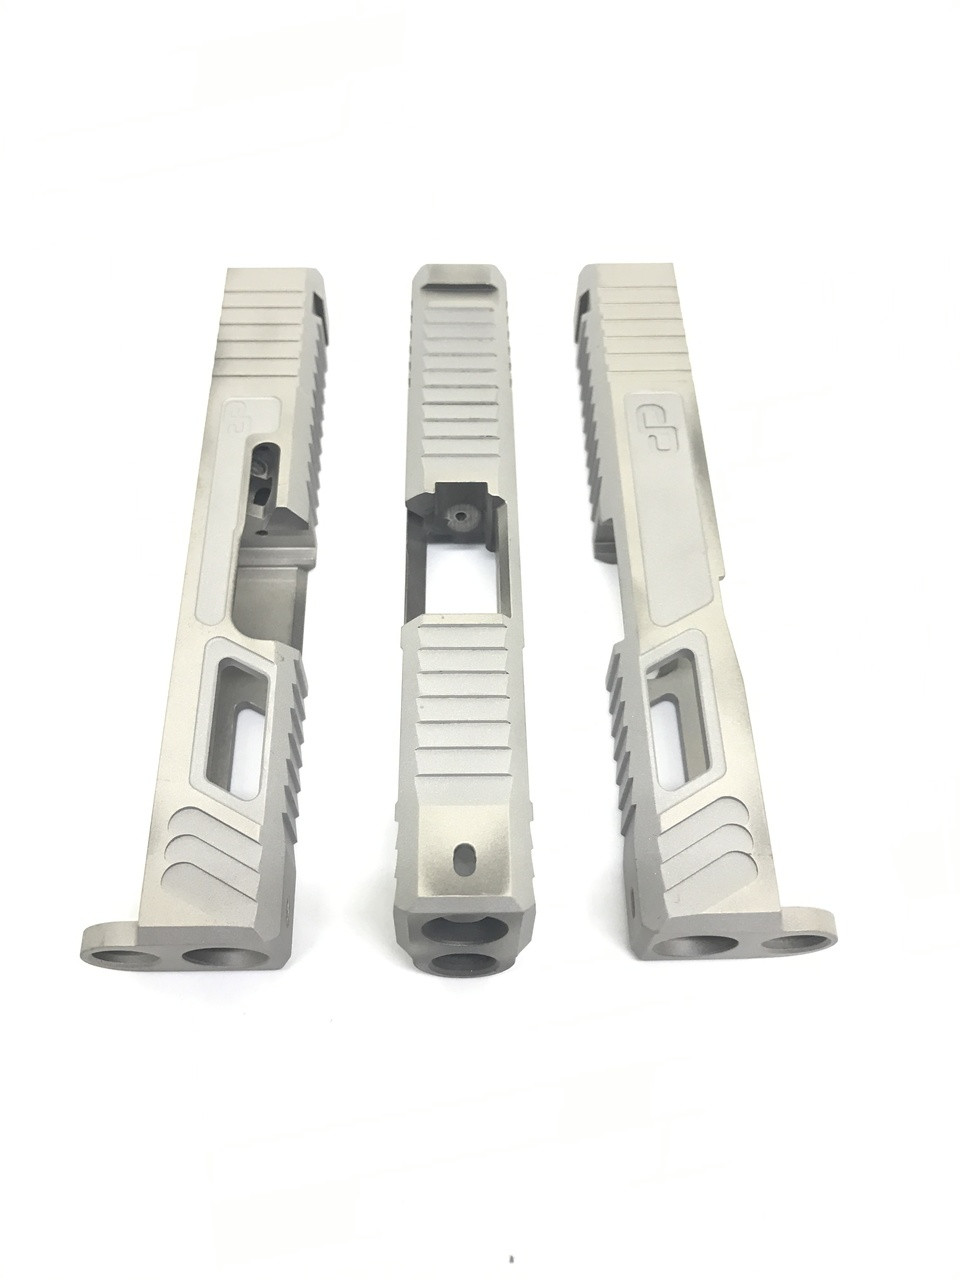 Glock GAB 3 Slide Package